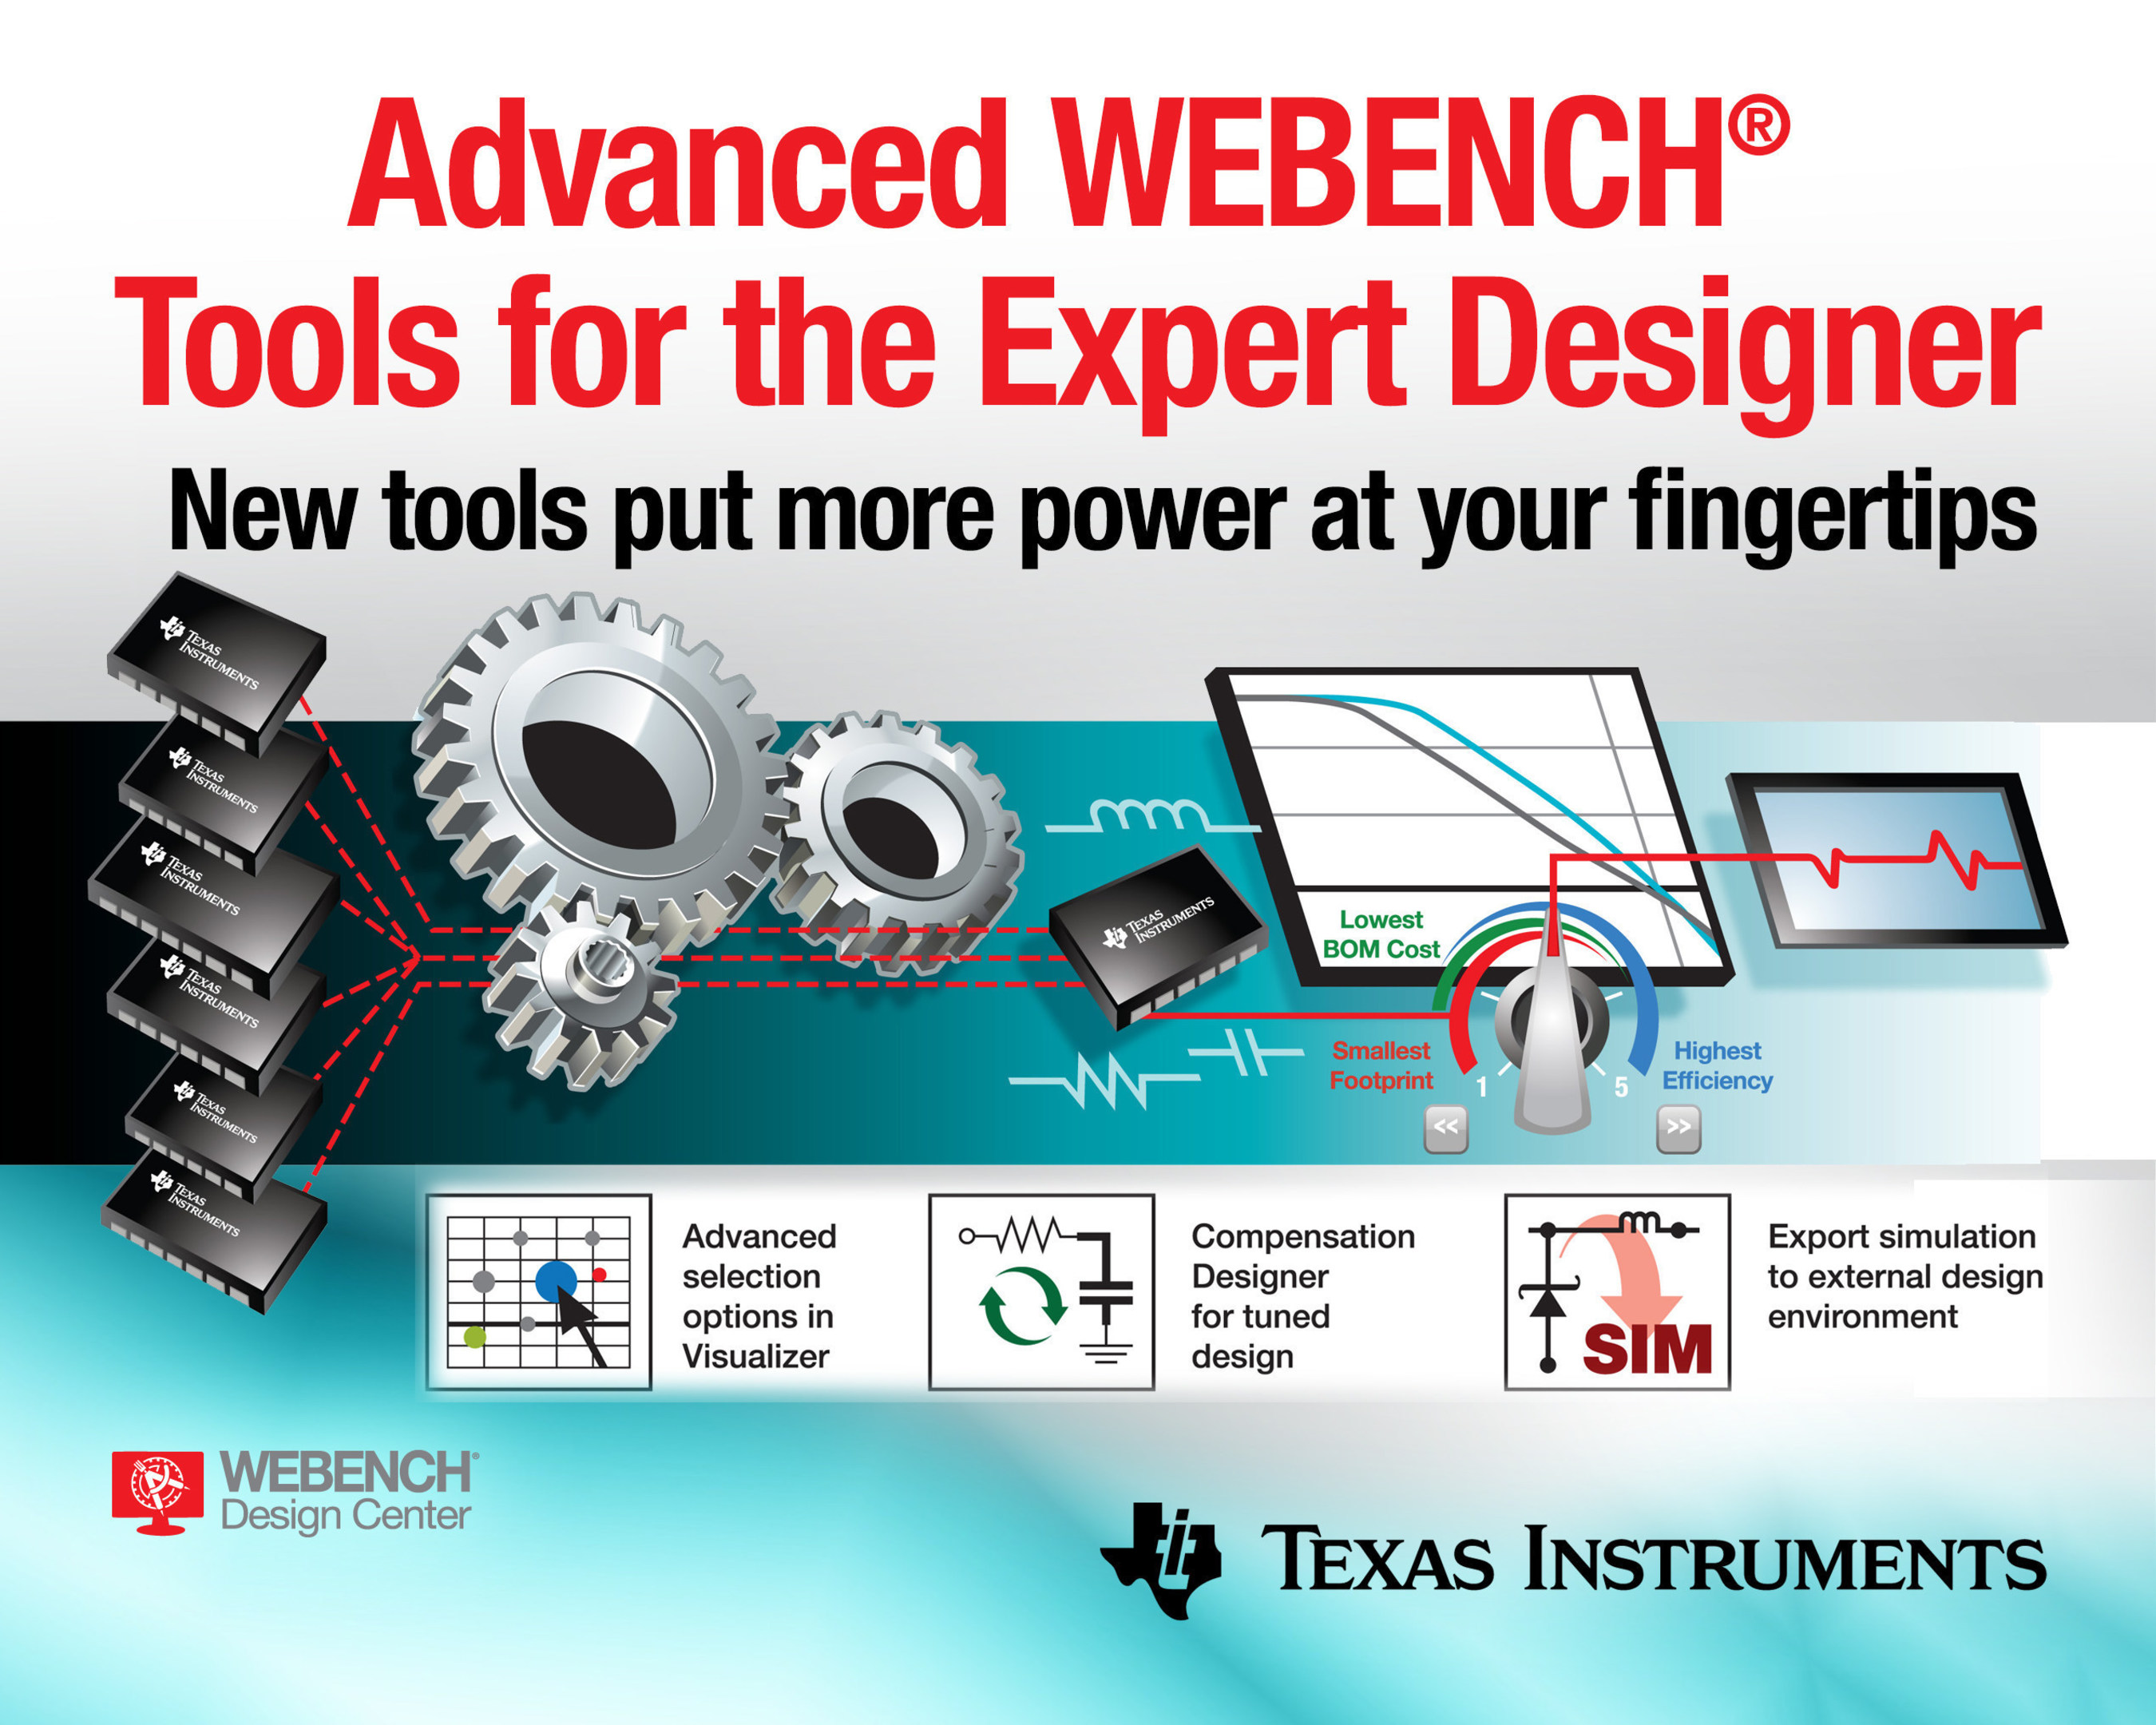 Advanced tools in WEBENCH� Power Designer provide experienced engineers with extensive design control, analysis and trouble-shooting capability to create complex power-supply designs. From control-loop compensation to simulation export, WEBENCH Power Designer now puts cutting-edge tools in the hands of expert design engineers to create power supplies for industrial, automotive and communications equipment.